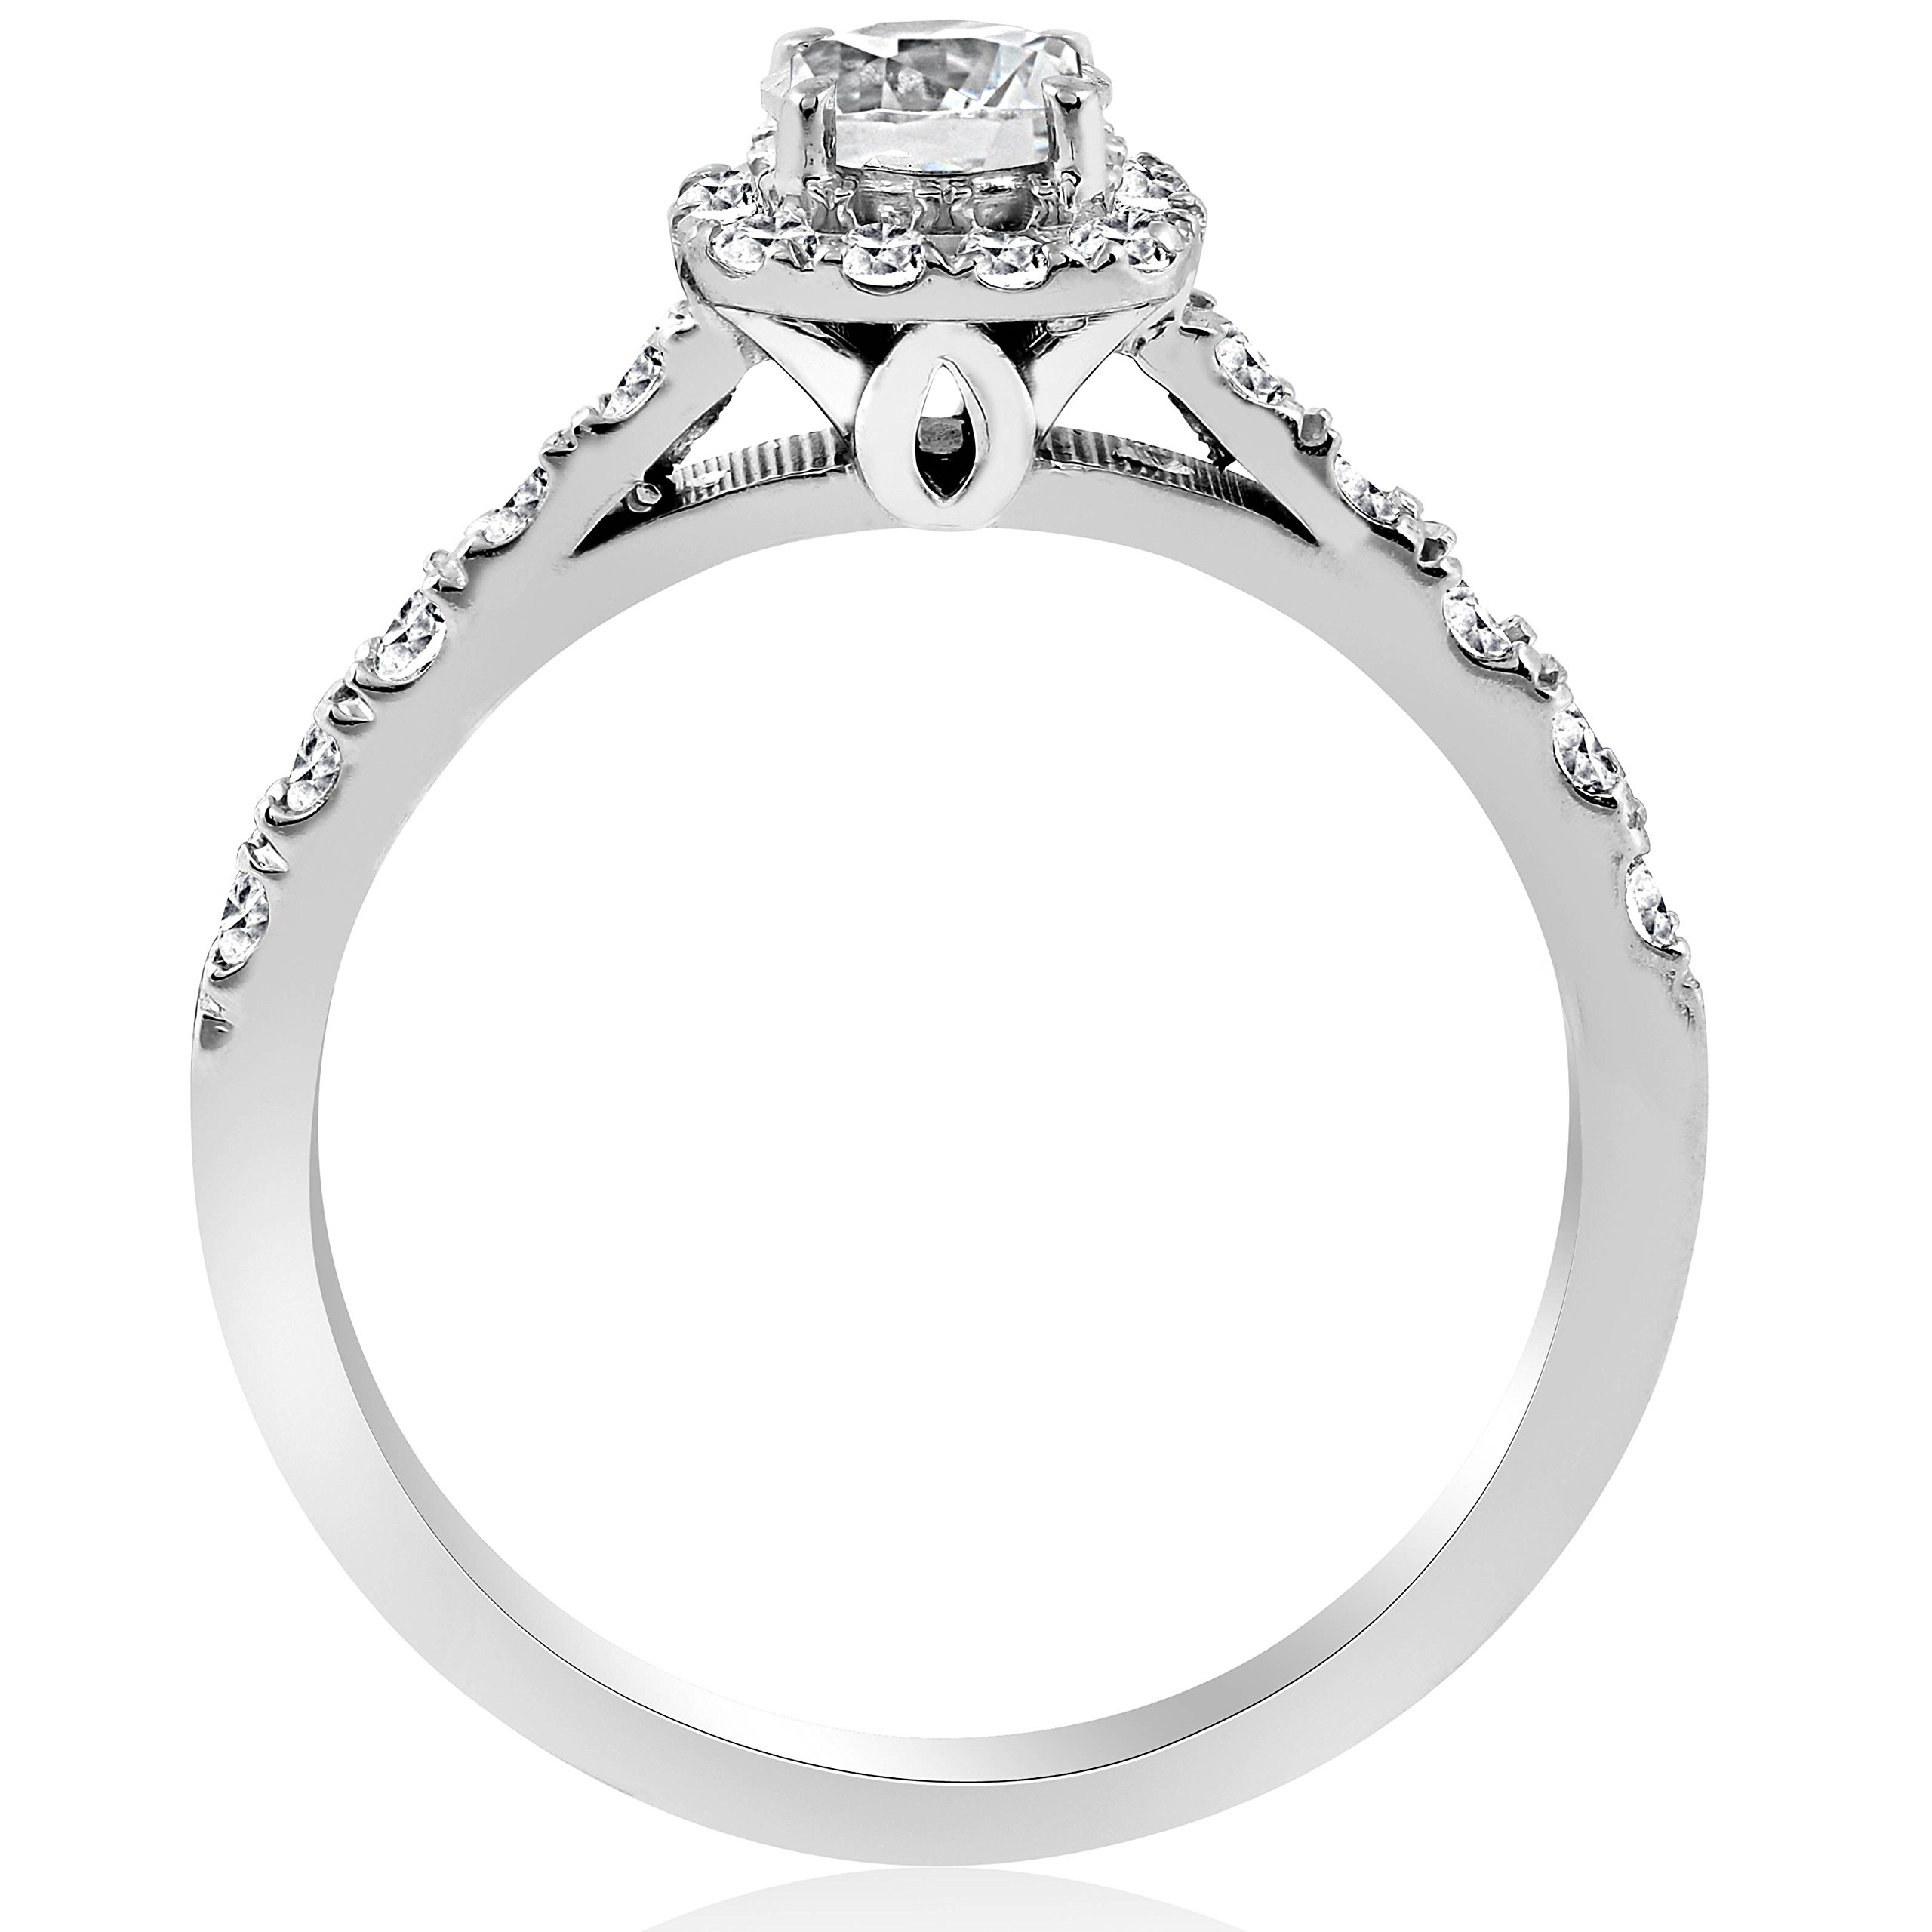 1ct Cushion Halo Diamond Engagement Ring 14K White Gold - Size 4 by P3 POMPEII3 (Image #2)